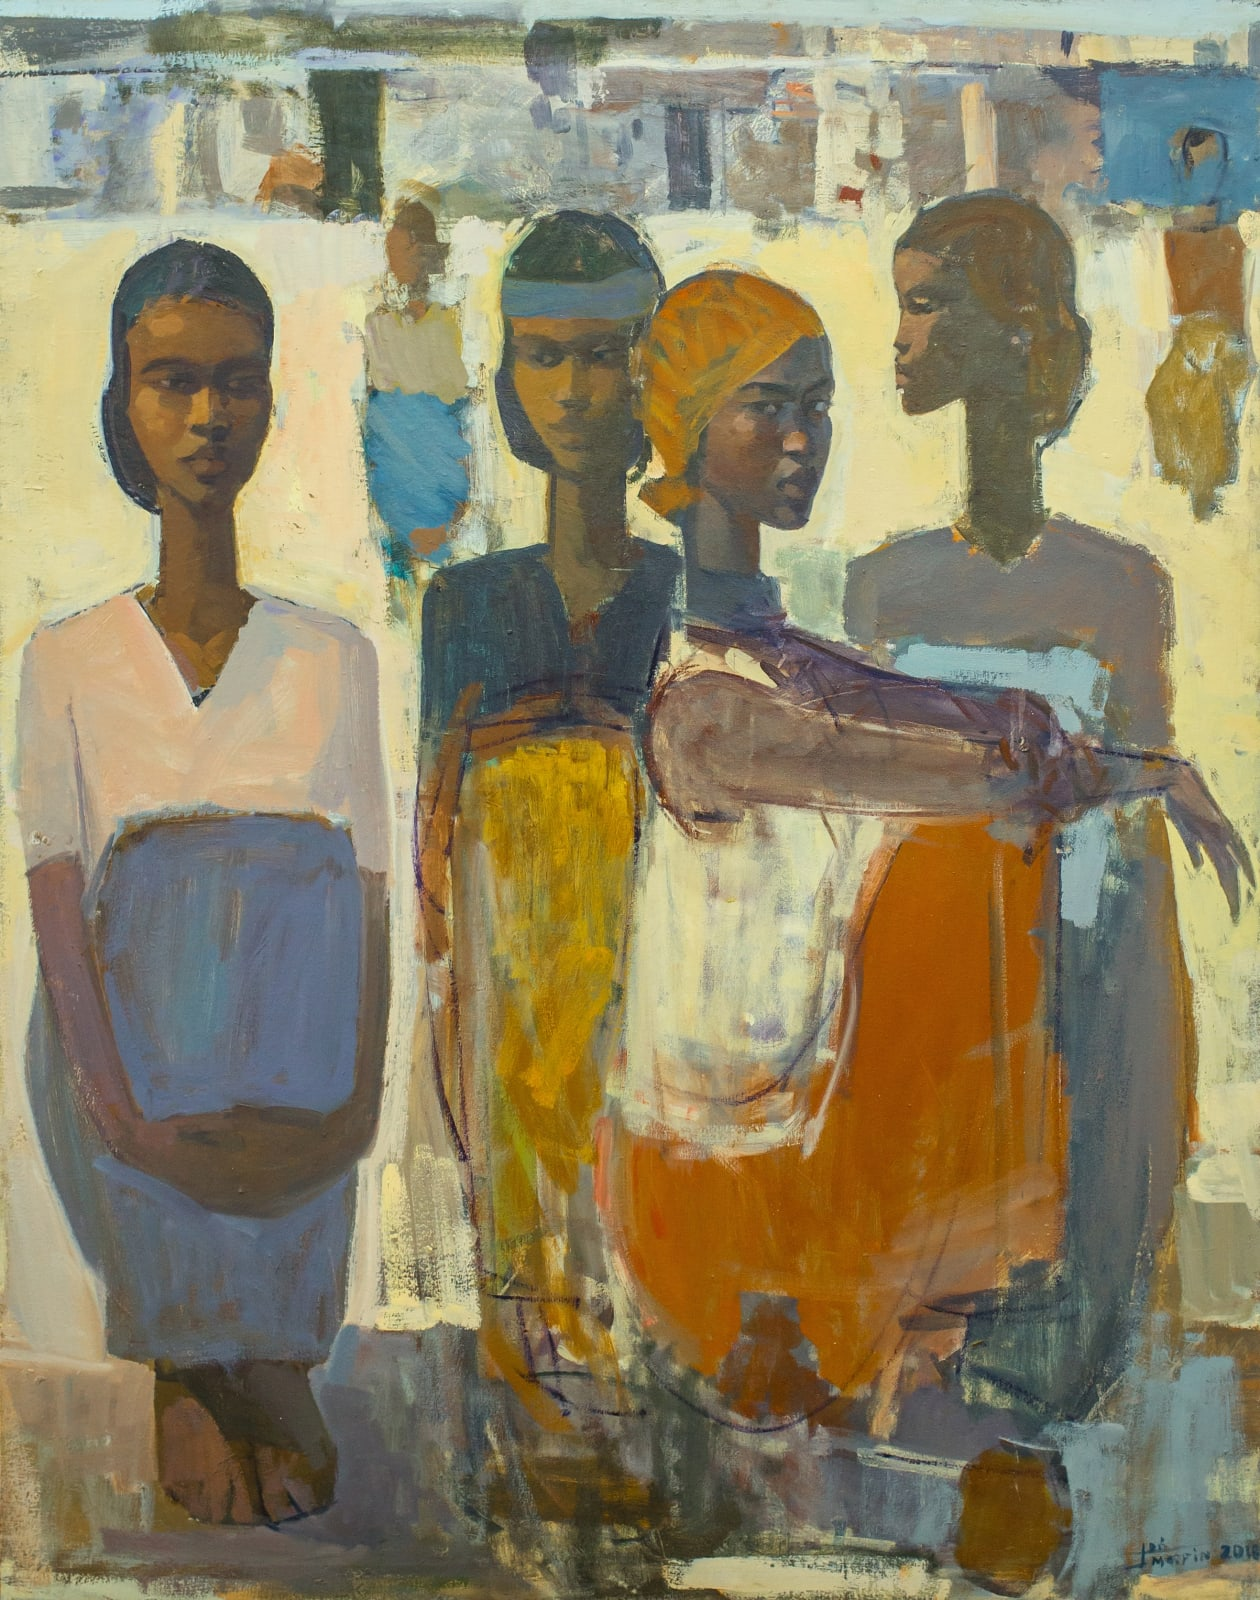 Tadesse Mesfin, Pillars of Life: Neighbours, 2018